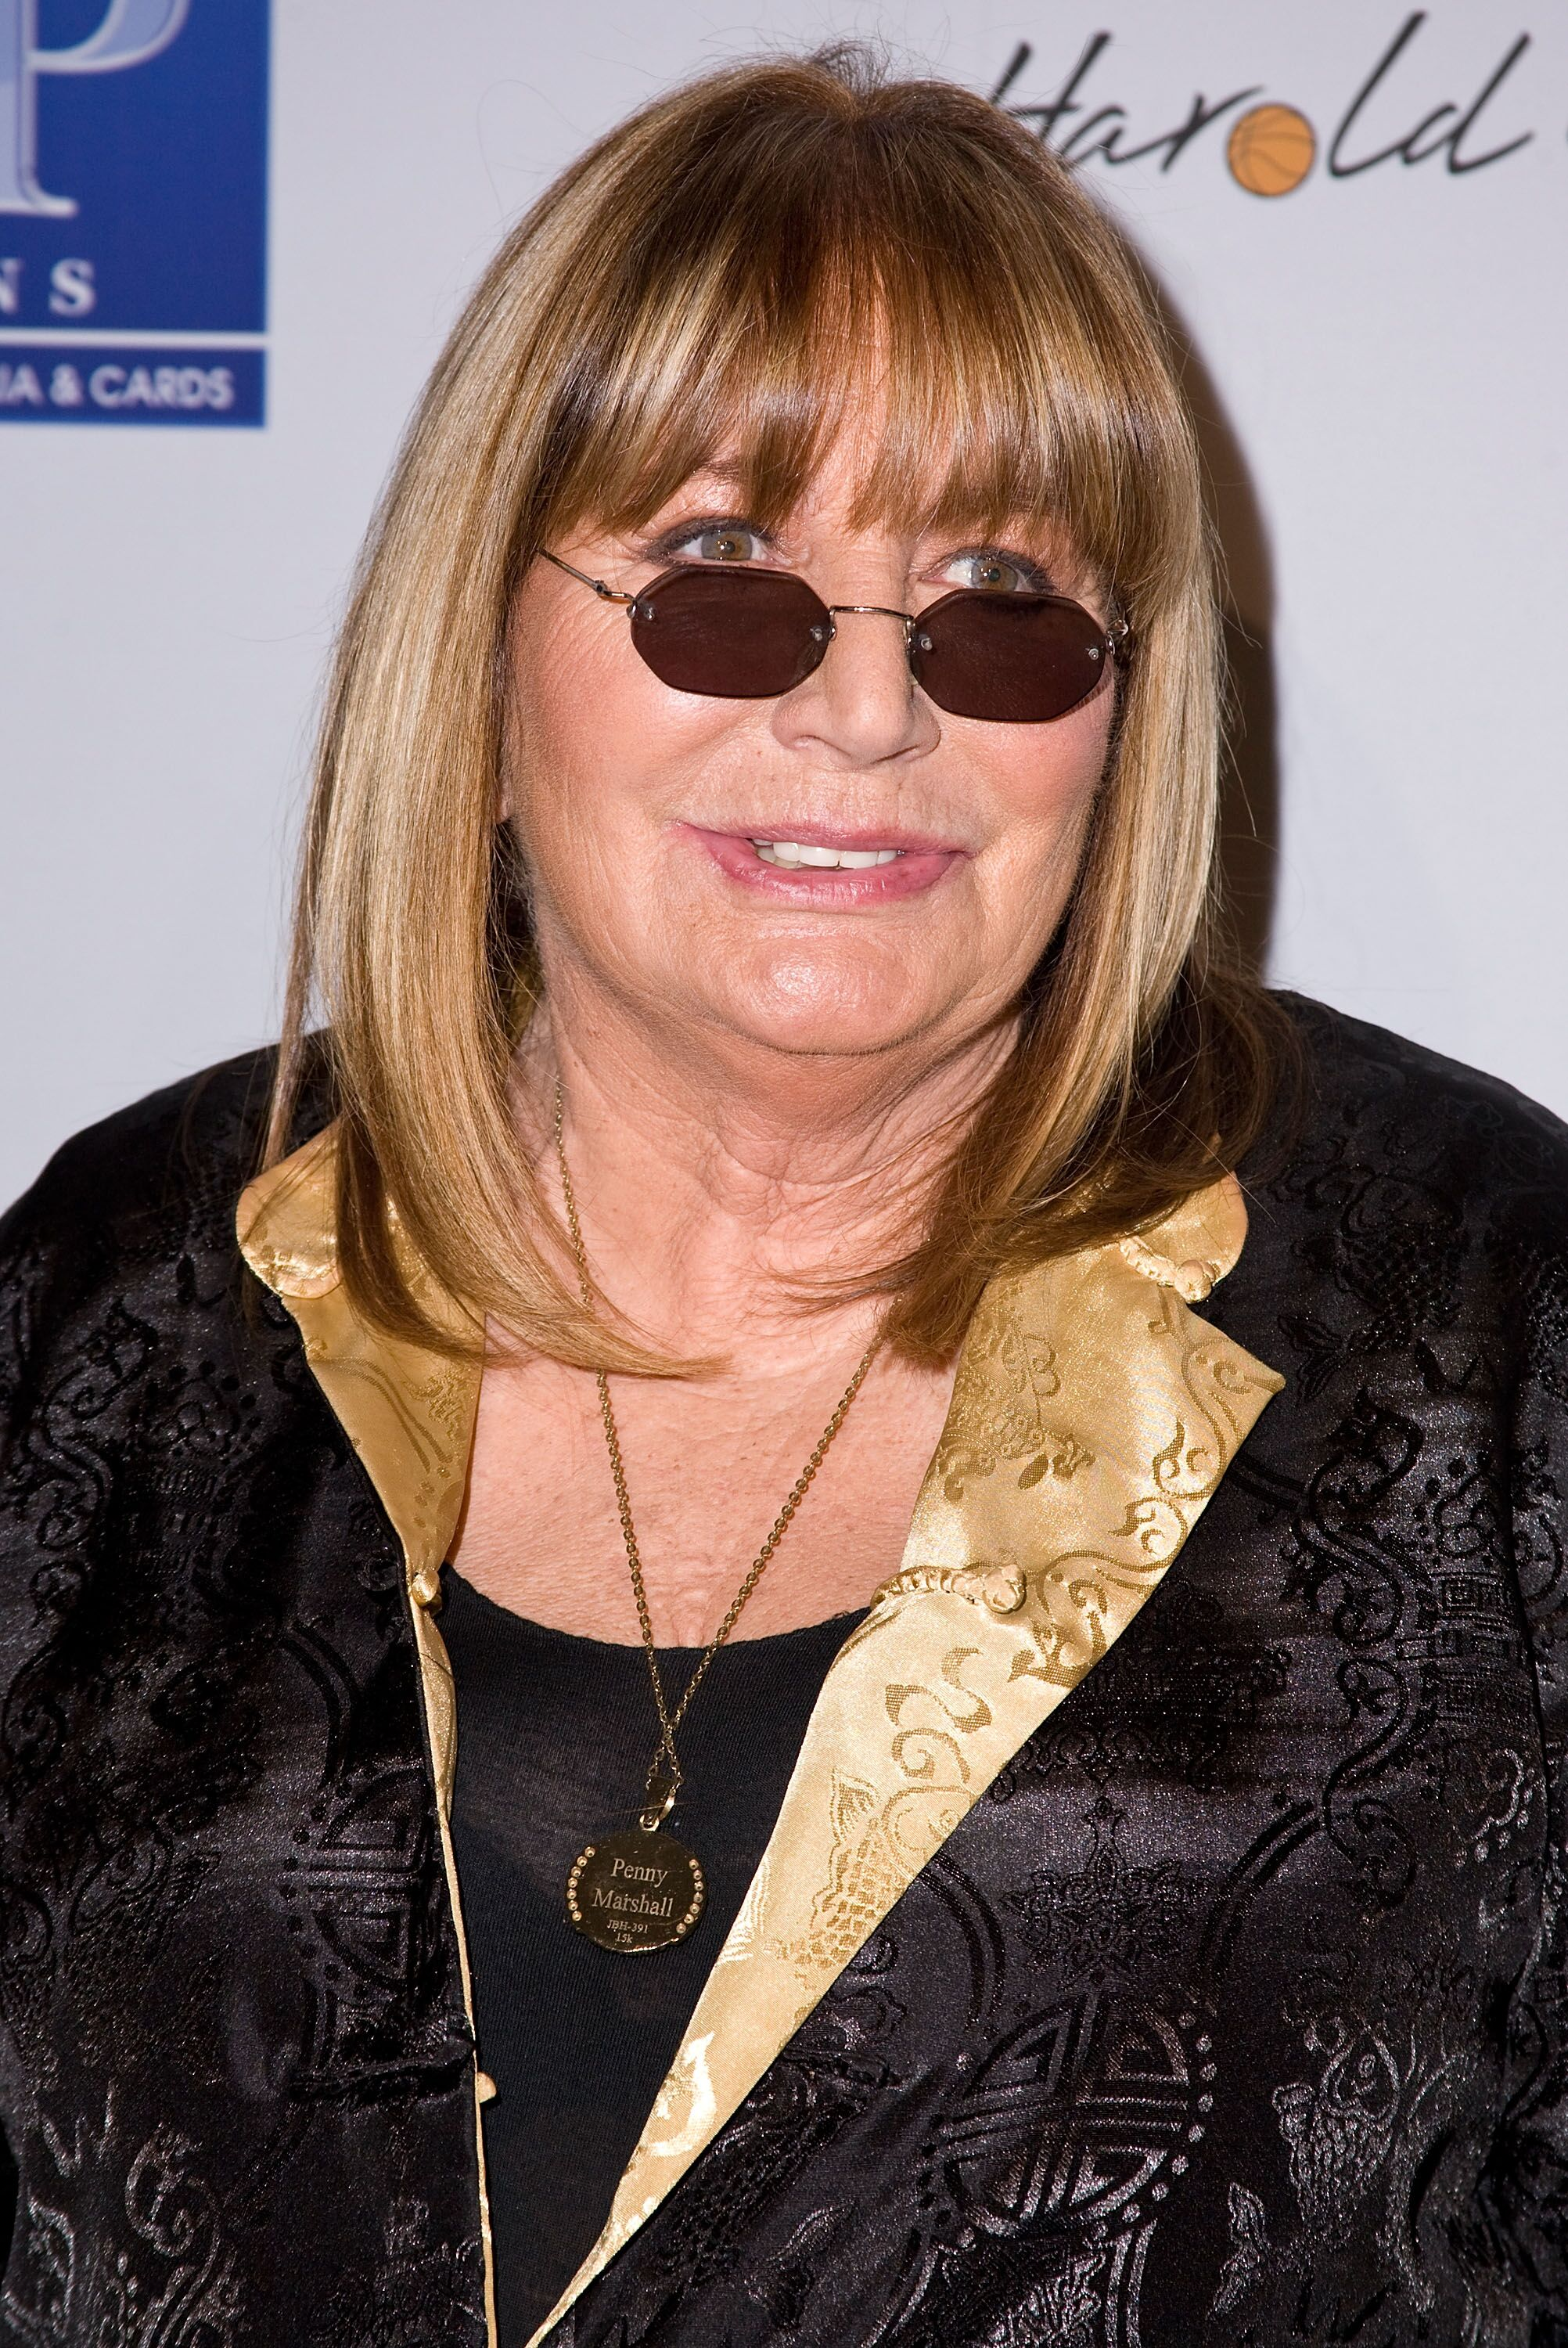 Penny Marshall attends the 13th annual Harold & Carole Pump Foundation gala. | Source: Getty Images